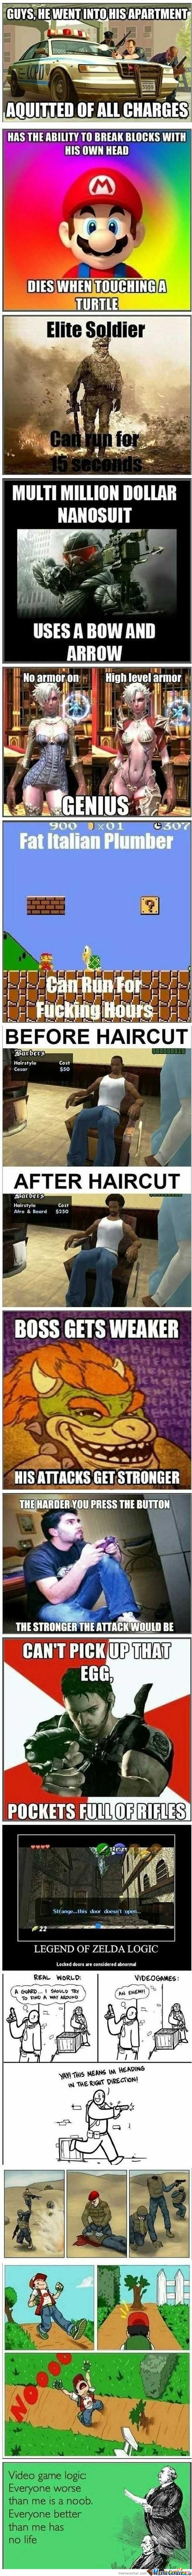 Video Games Logic